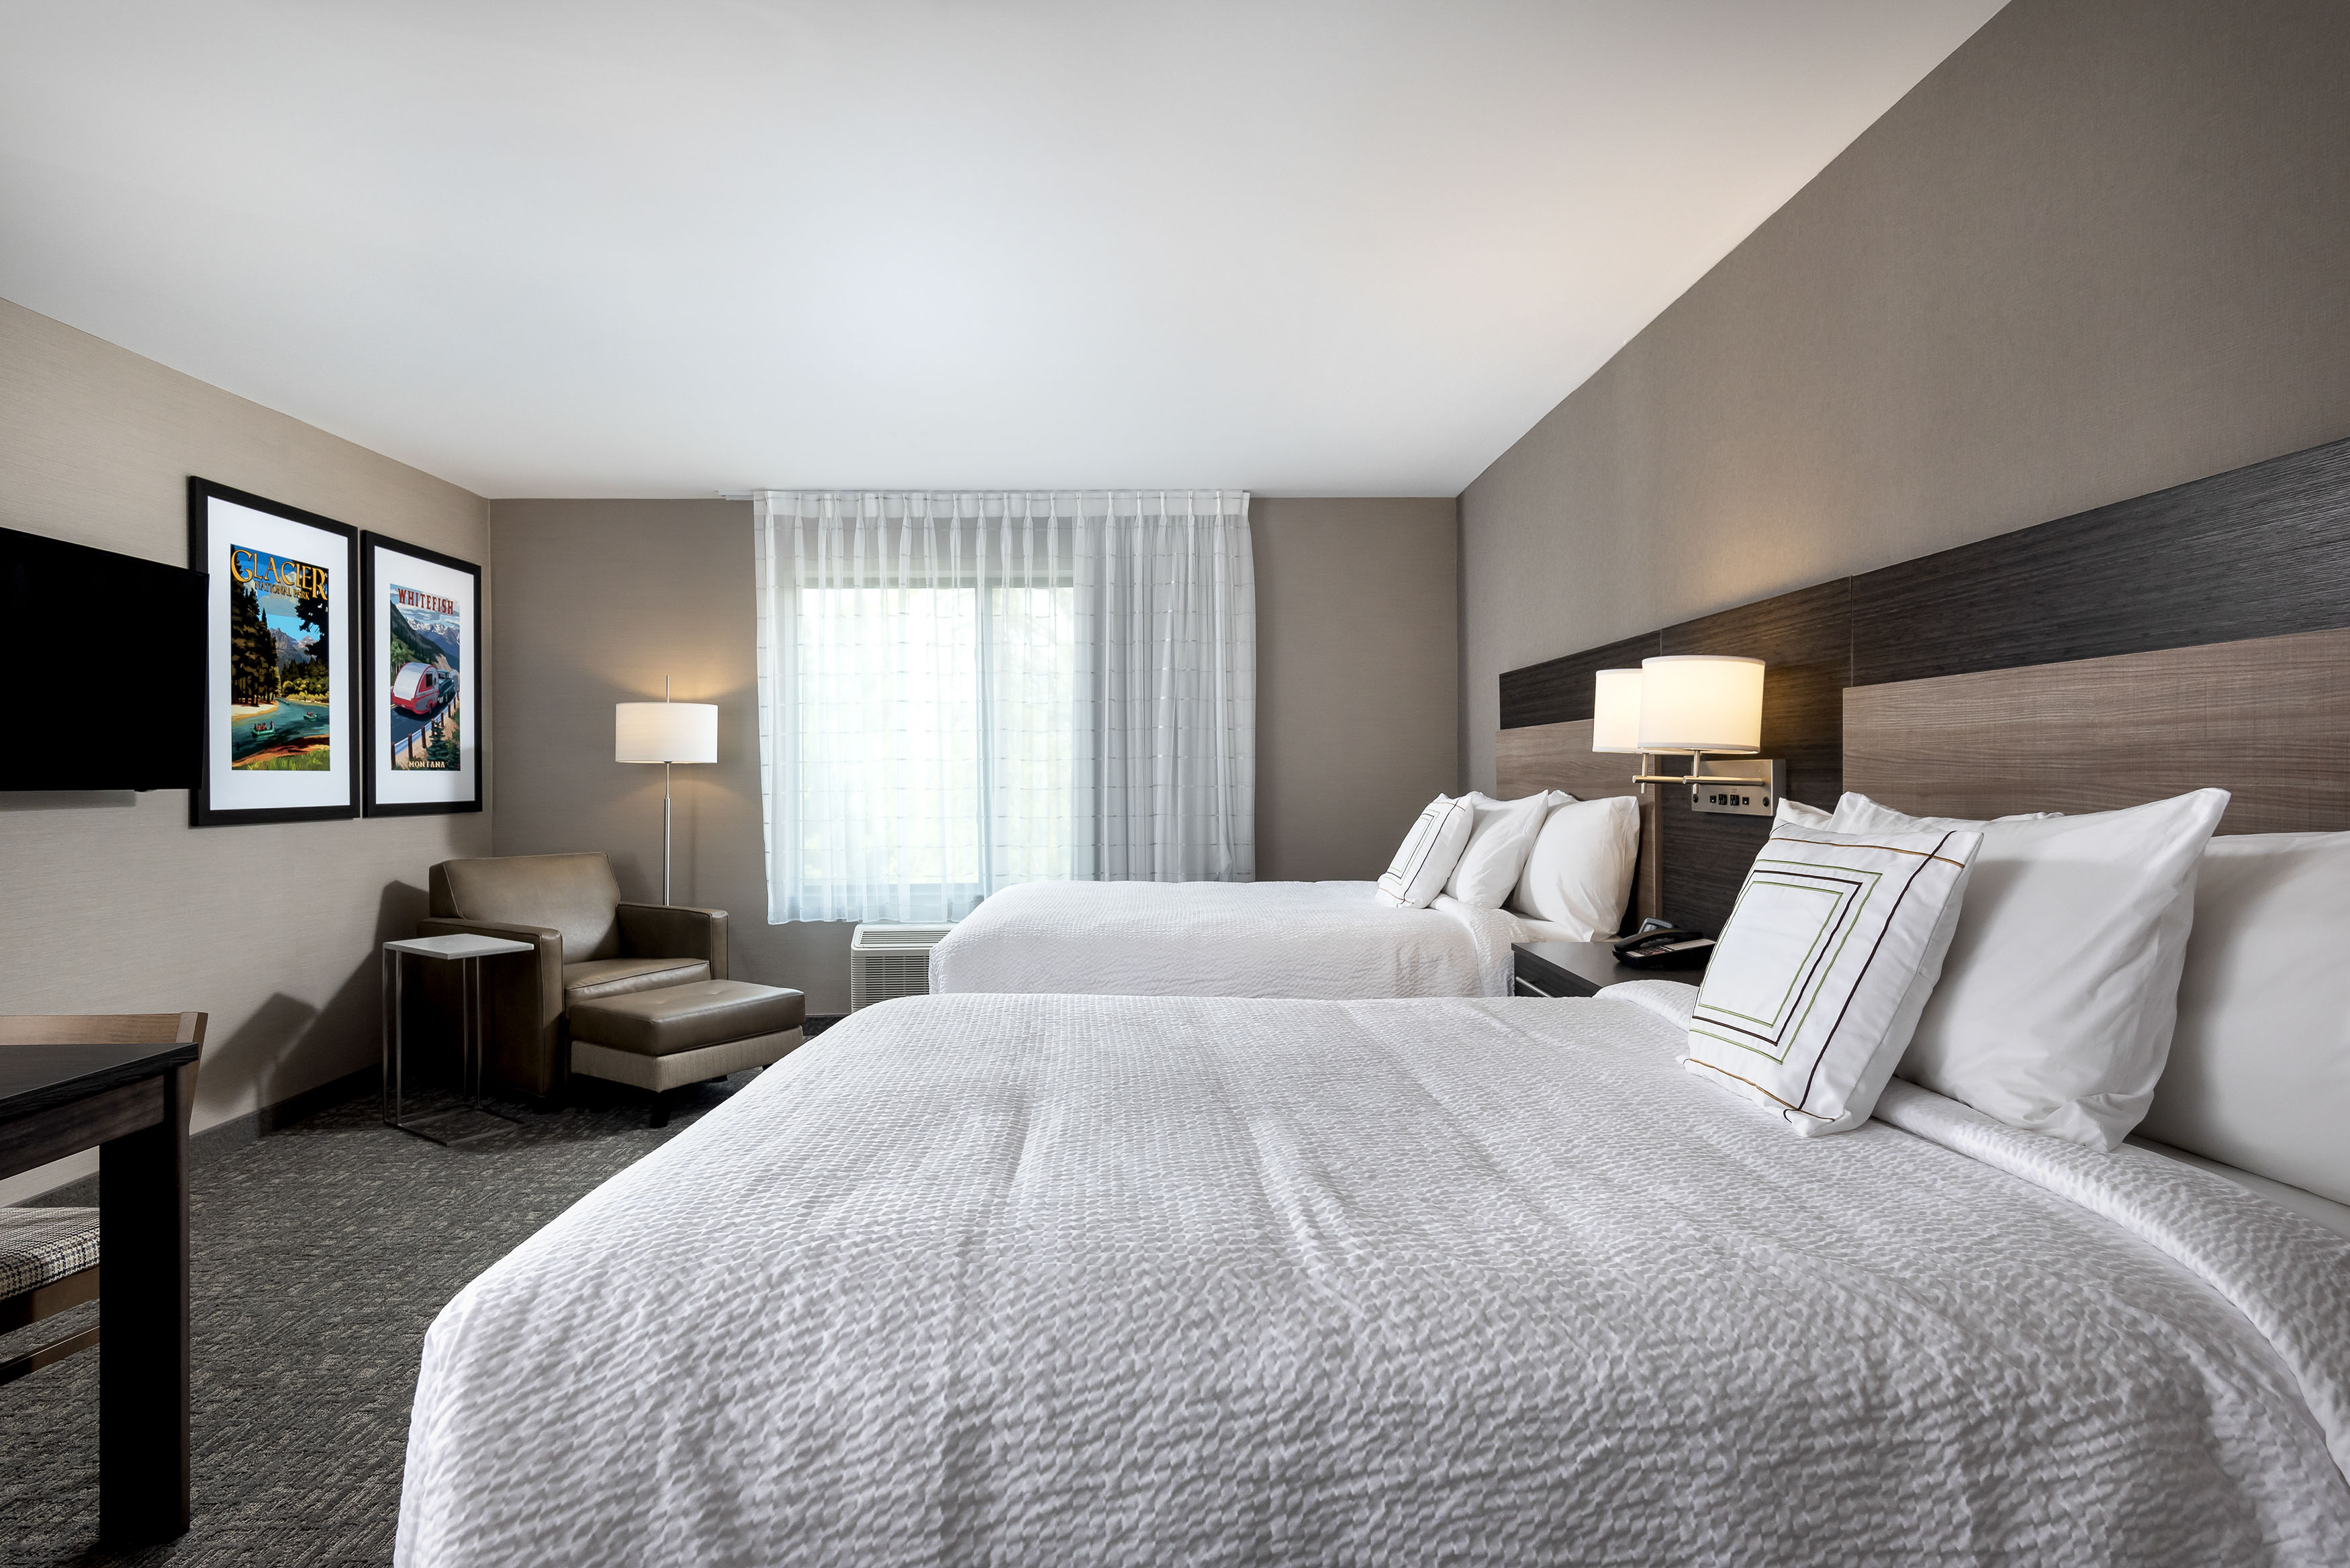 Towne-place-suite-marriott-hotels-towneplace-hotel-whitefish-montana-Double-bed